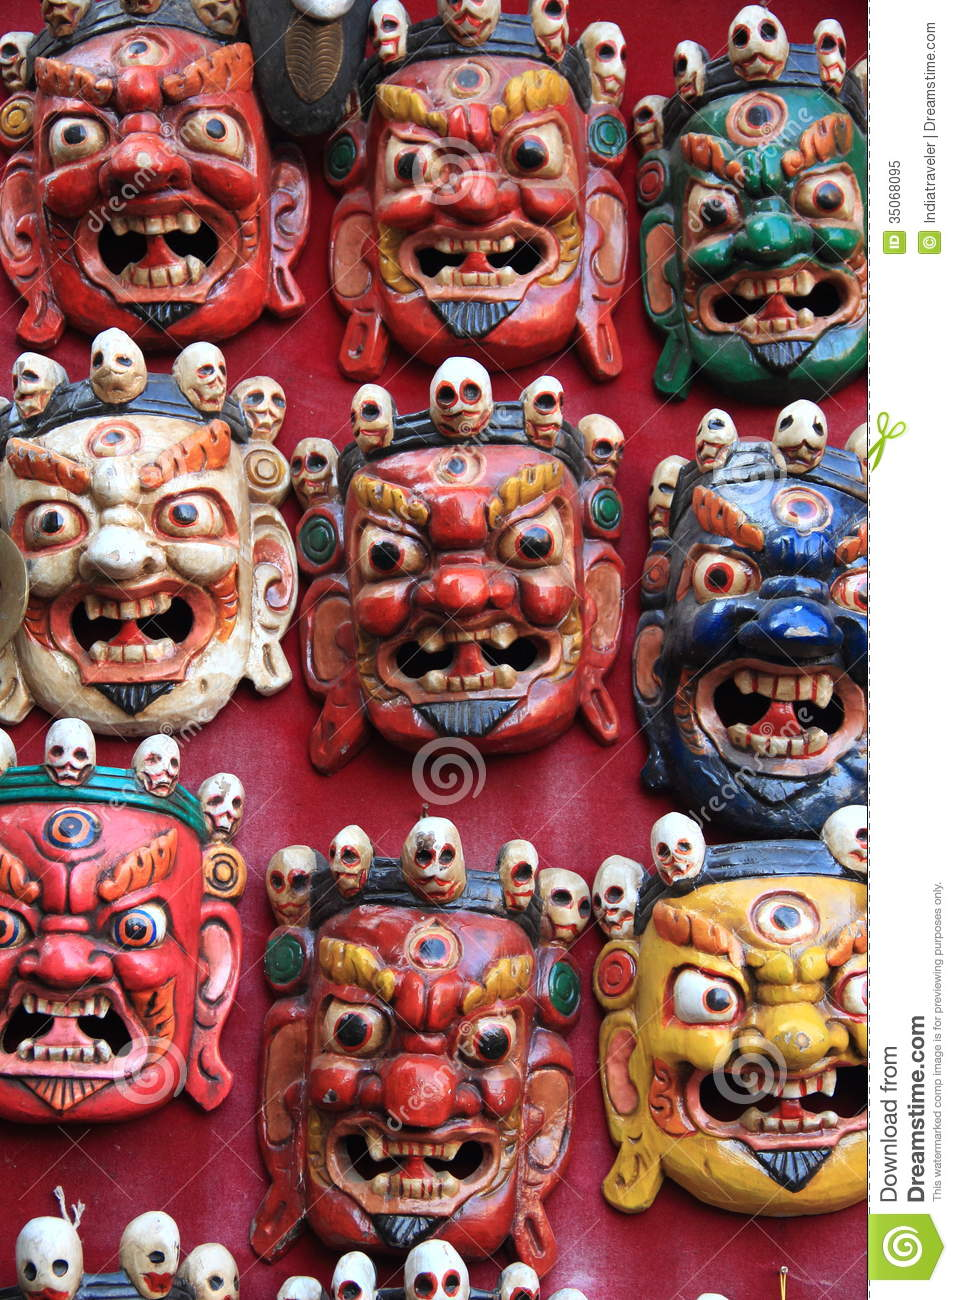 Wooden Masks For Sale In Nepal  Stock Image - Image of grey